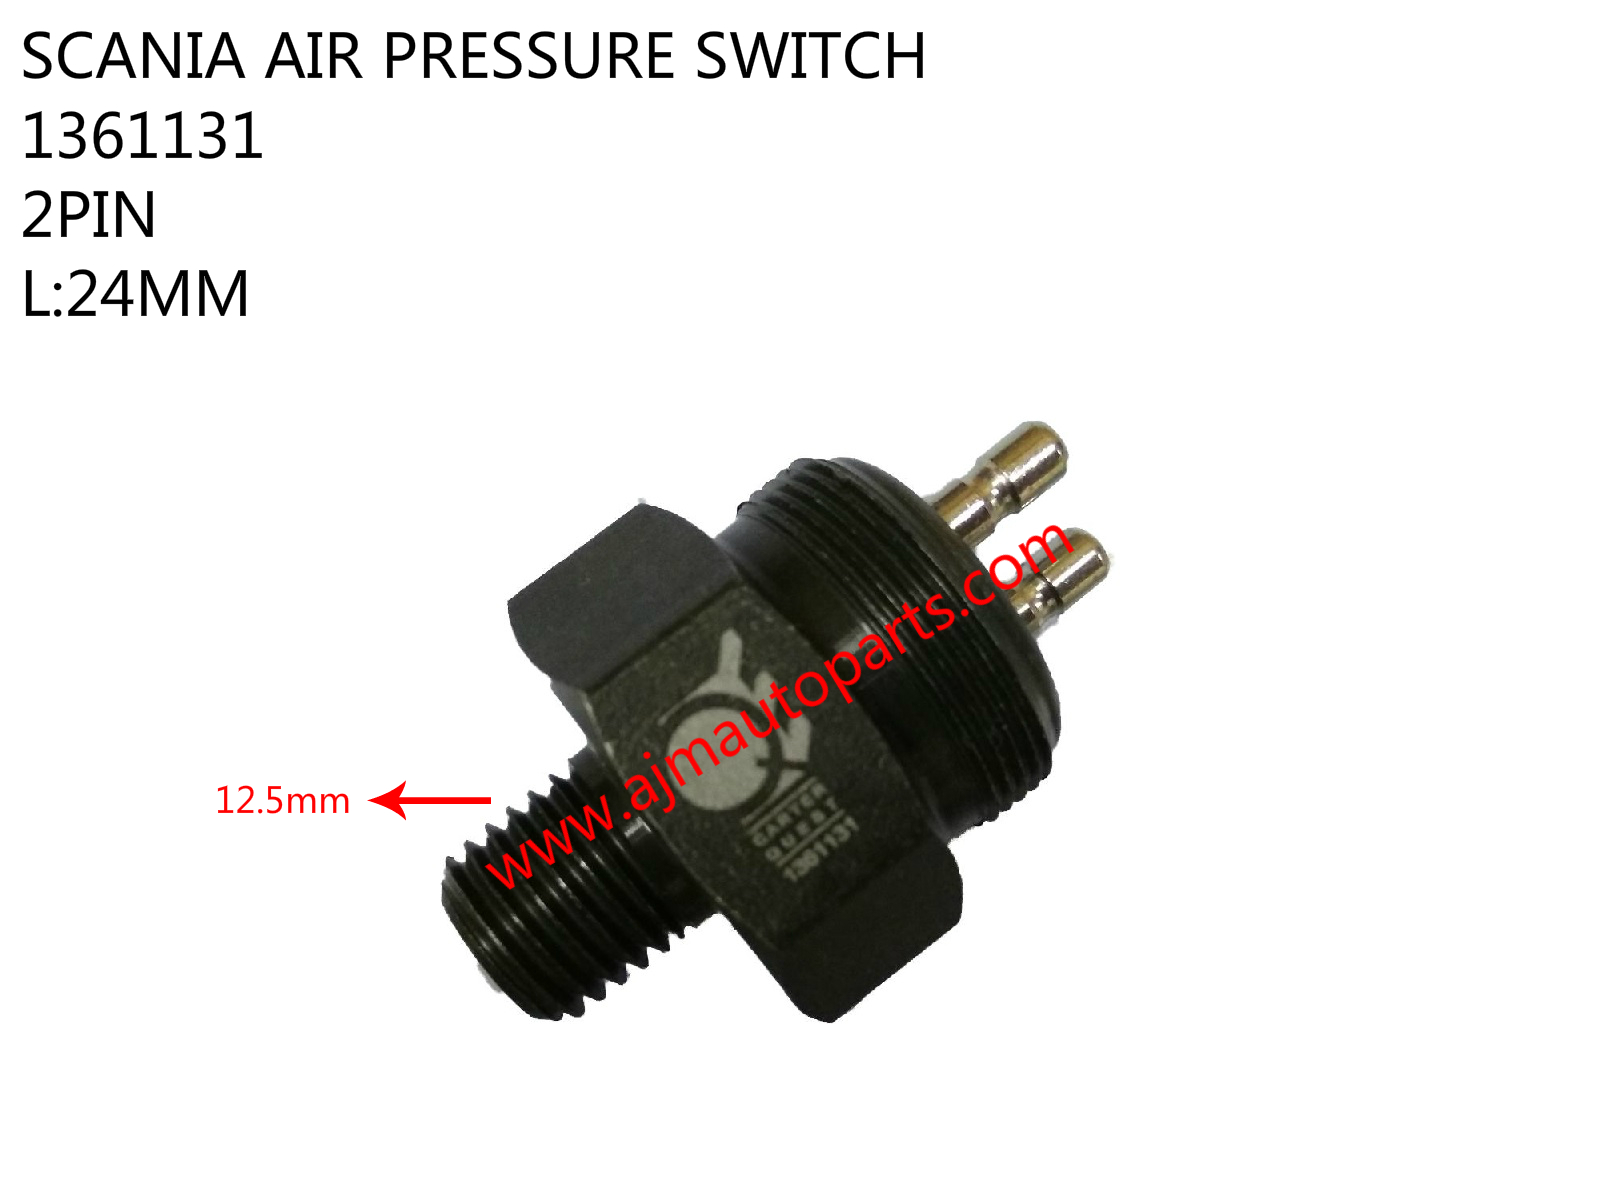 SCANIA AIR PRESSURE SWITCH-1361131